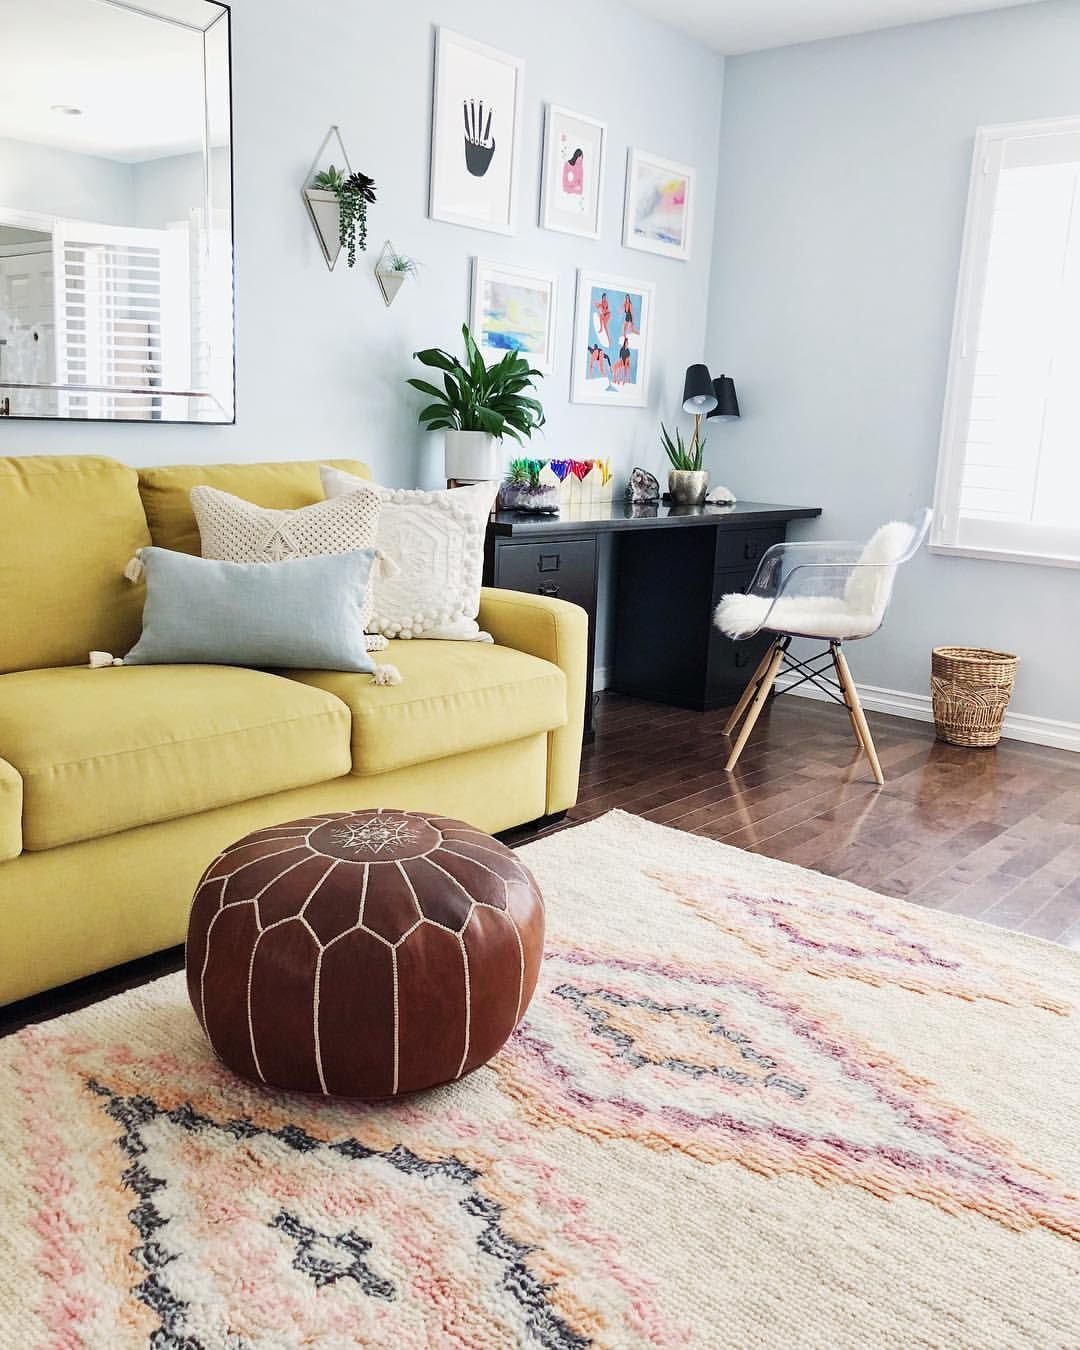 Moroccan Pouf, Shag Rug, Colorful Couch, Playroom, Ghost